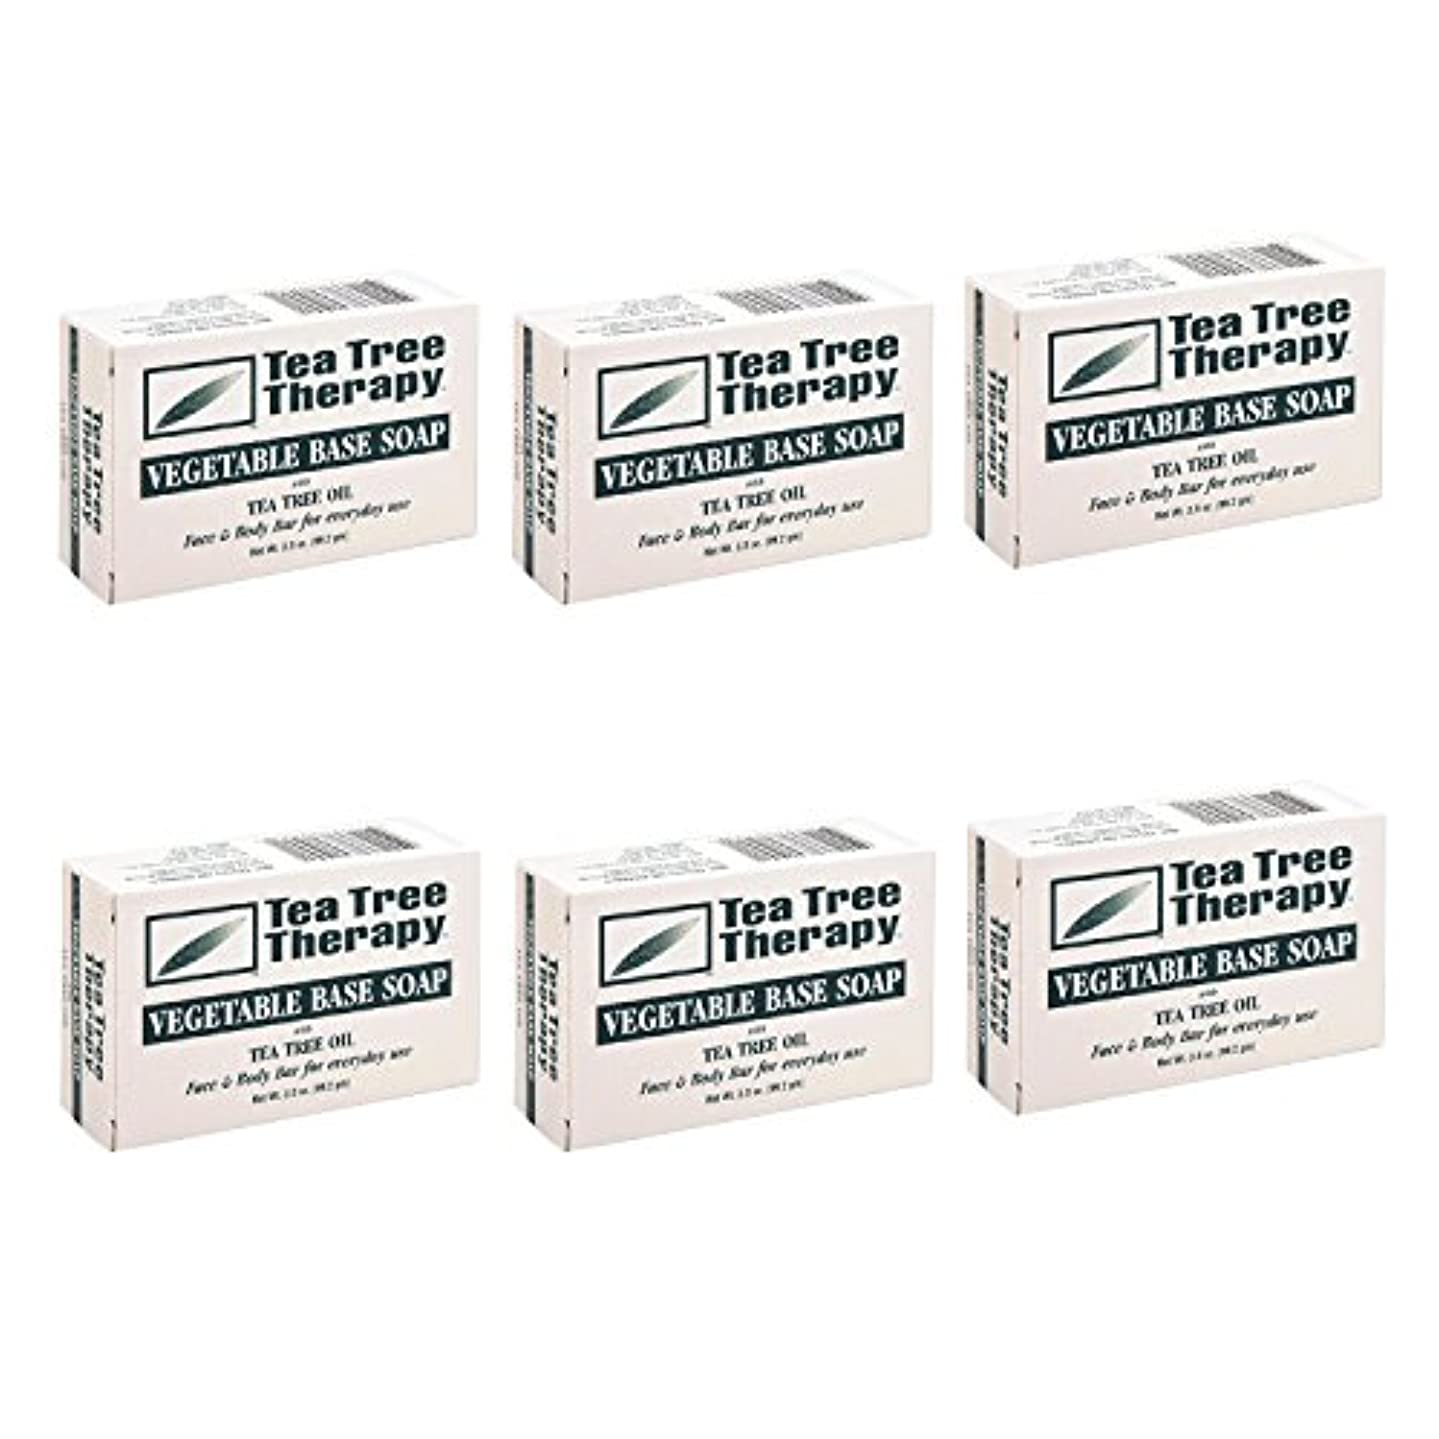 Tea Tree Therapy, Soap Bar, Vegetable Base, 3.5 oz (6-Pack) by Tea Tree Therapy